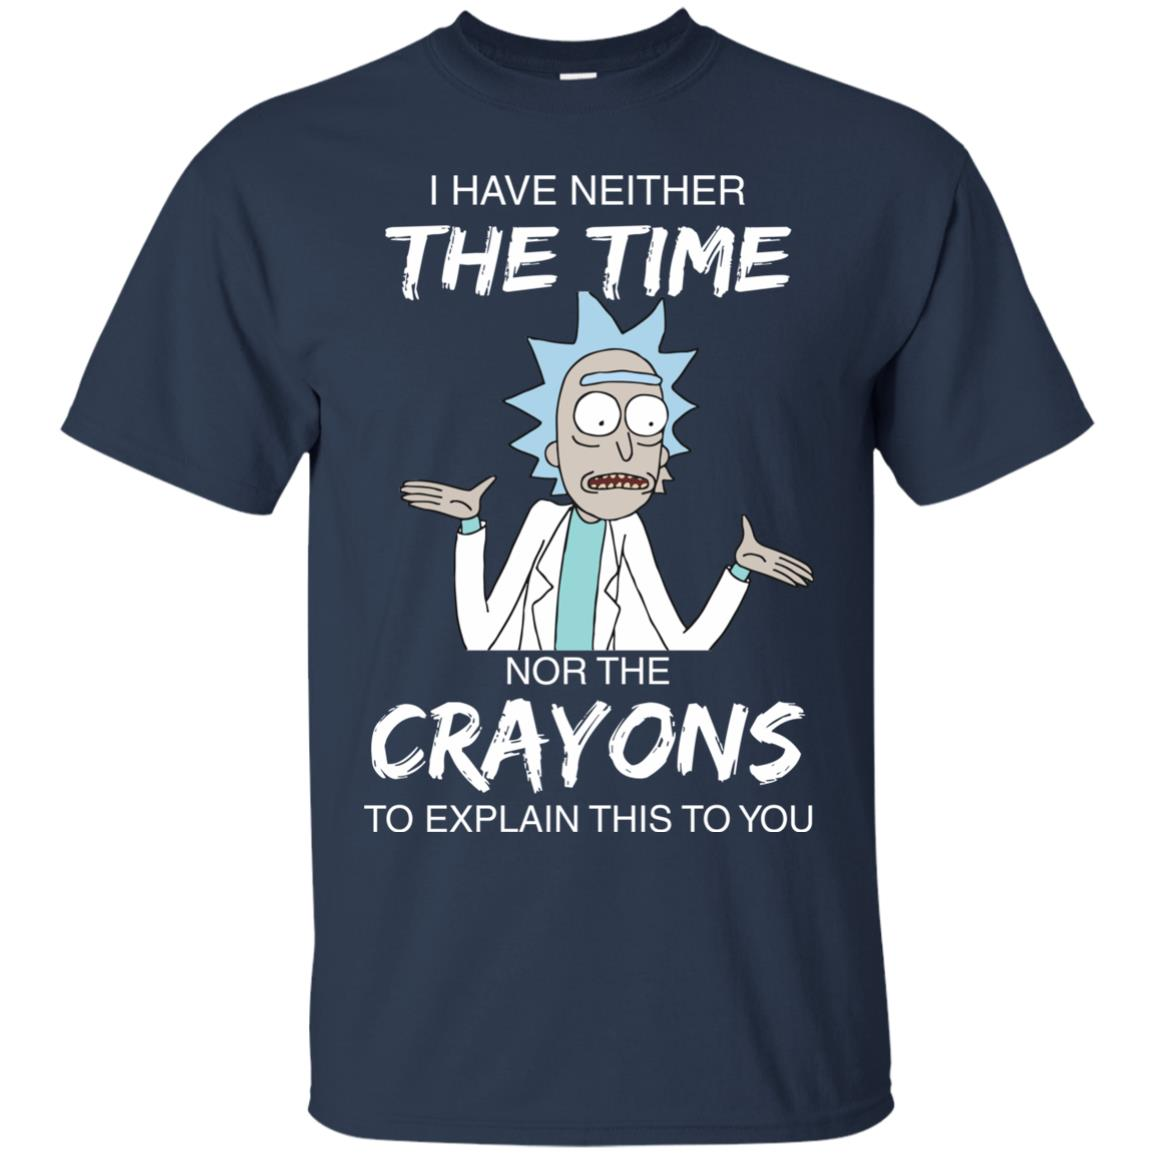 image 1106px Rick and Morty: I have Neither Nor The Crayons To Explanin This To You T Shirts